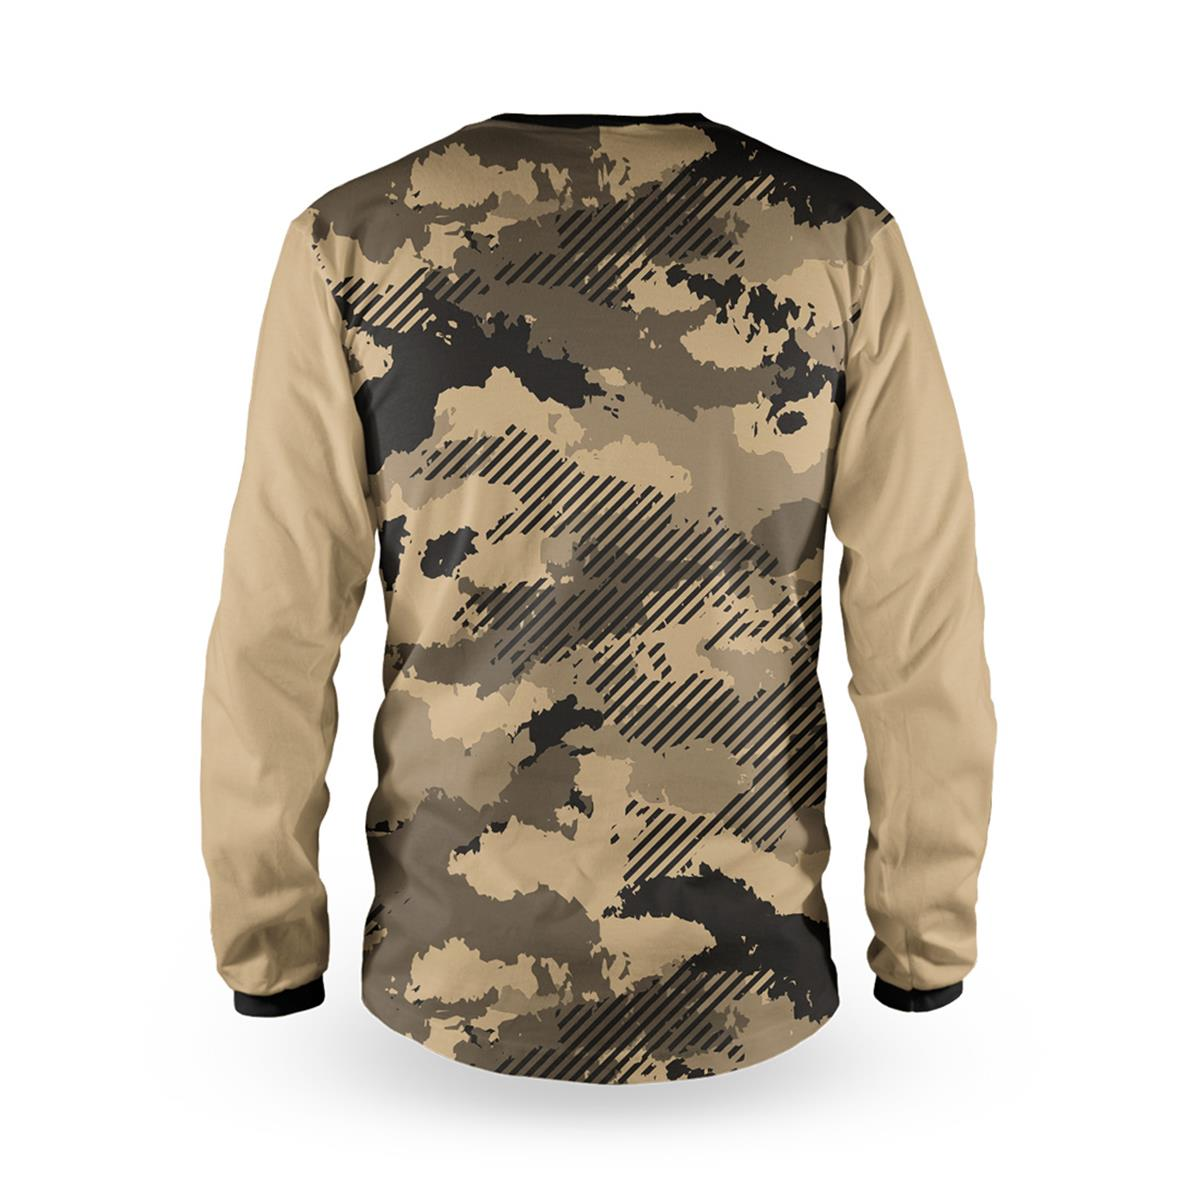 LOOSE RIDER ADULT MTB JERSEY VINK CAMO SLATE AM FR DH JERSEY